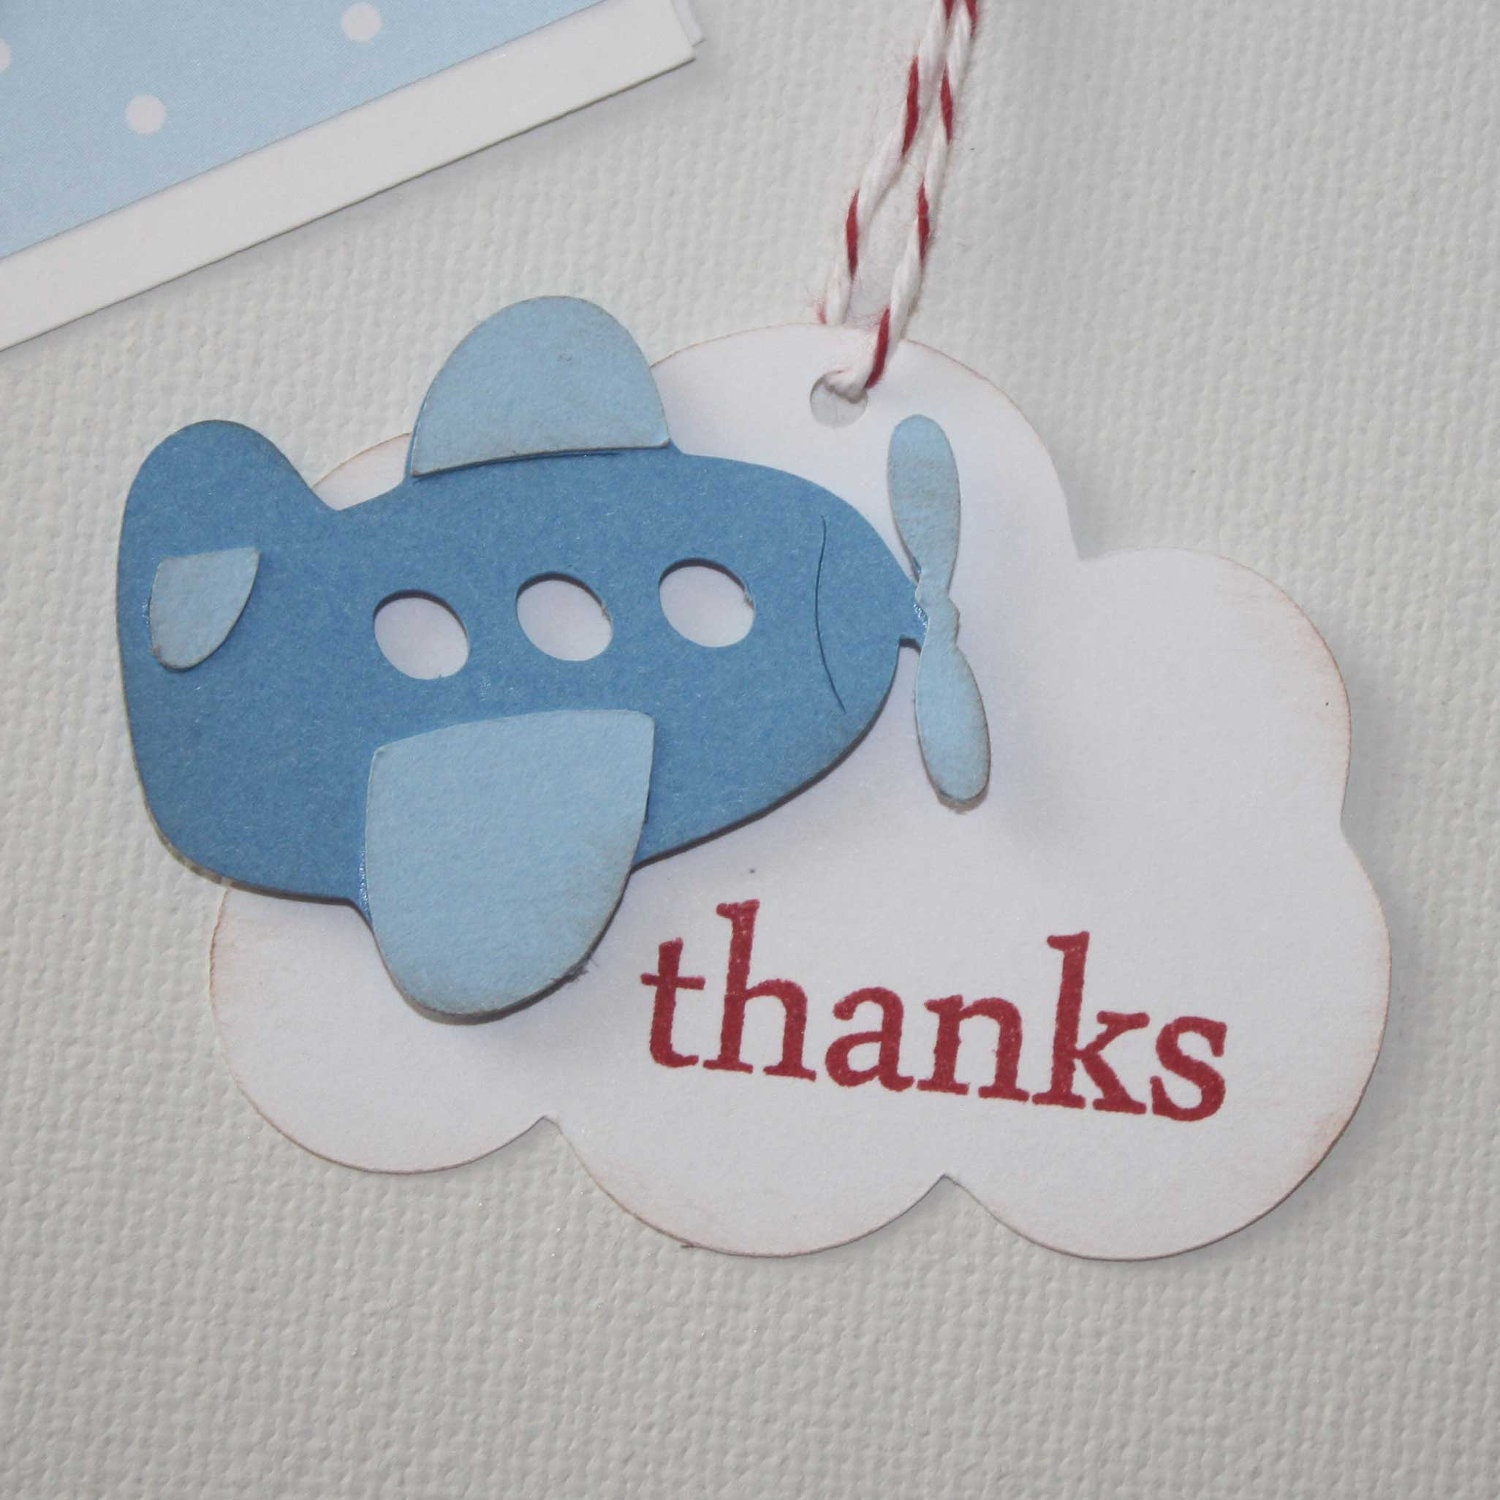 Airplane Birthday Party Favor Tags: Airplane Thank You Tags Favor Tags Gift Tags Perfect For